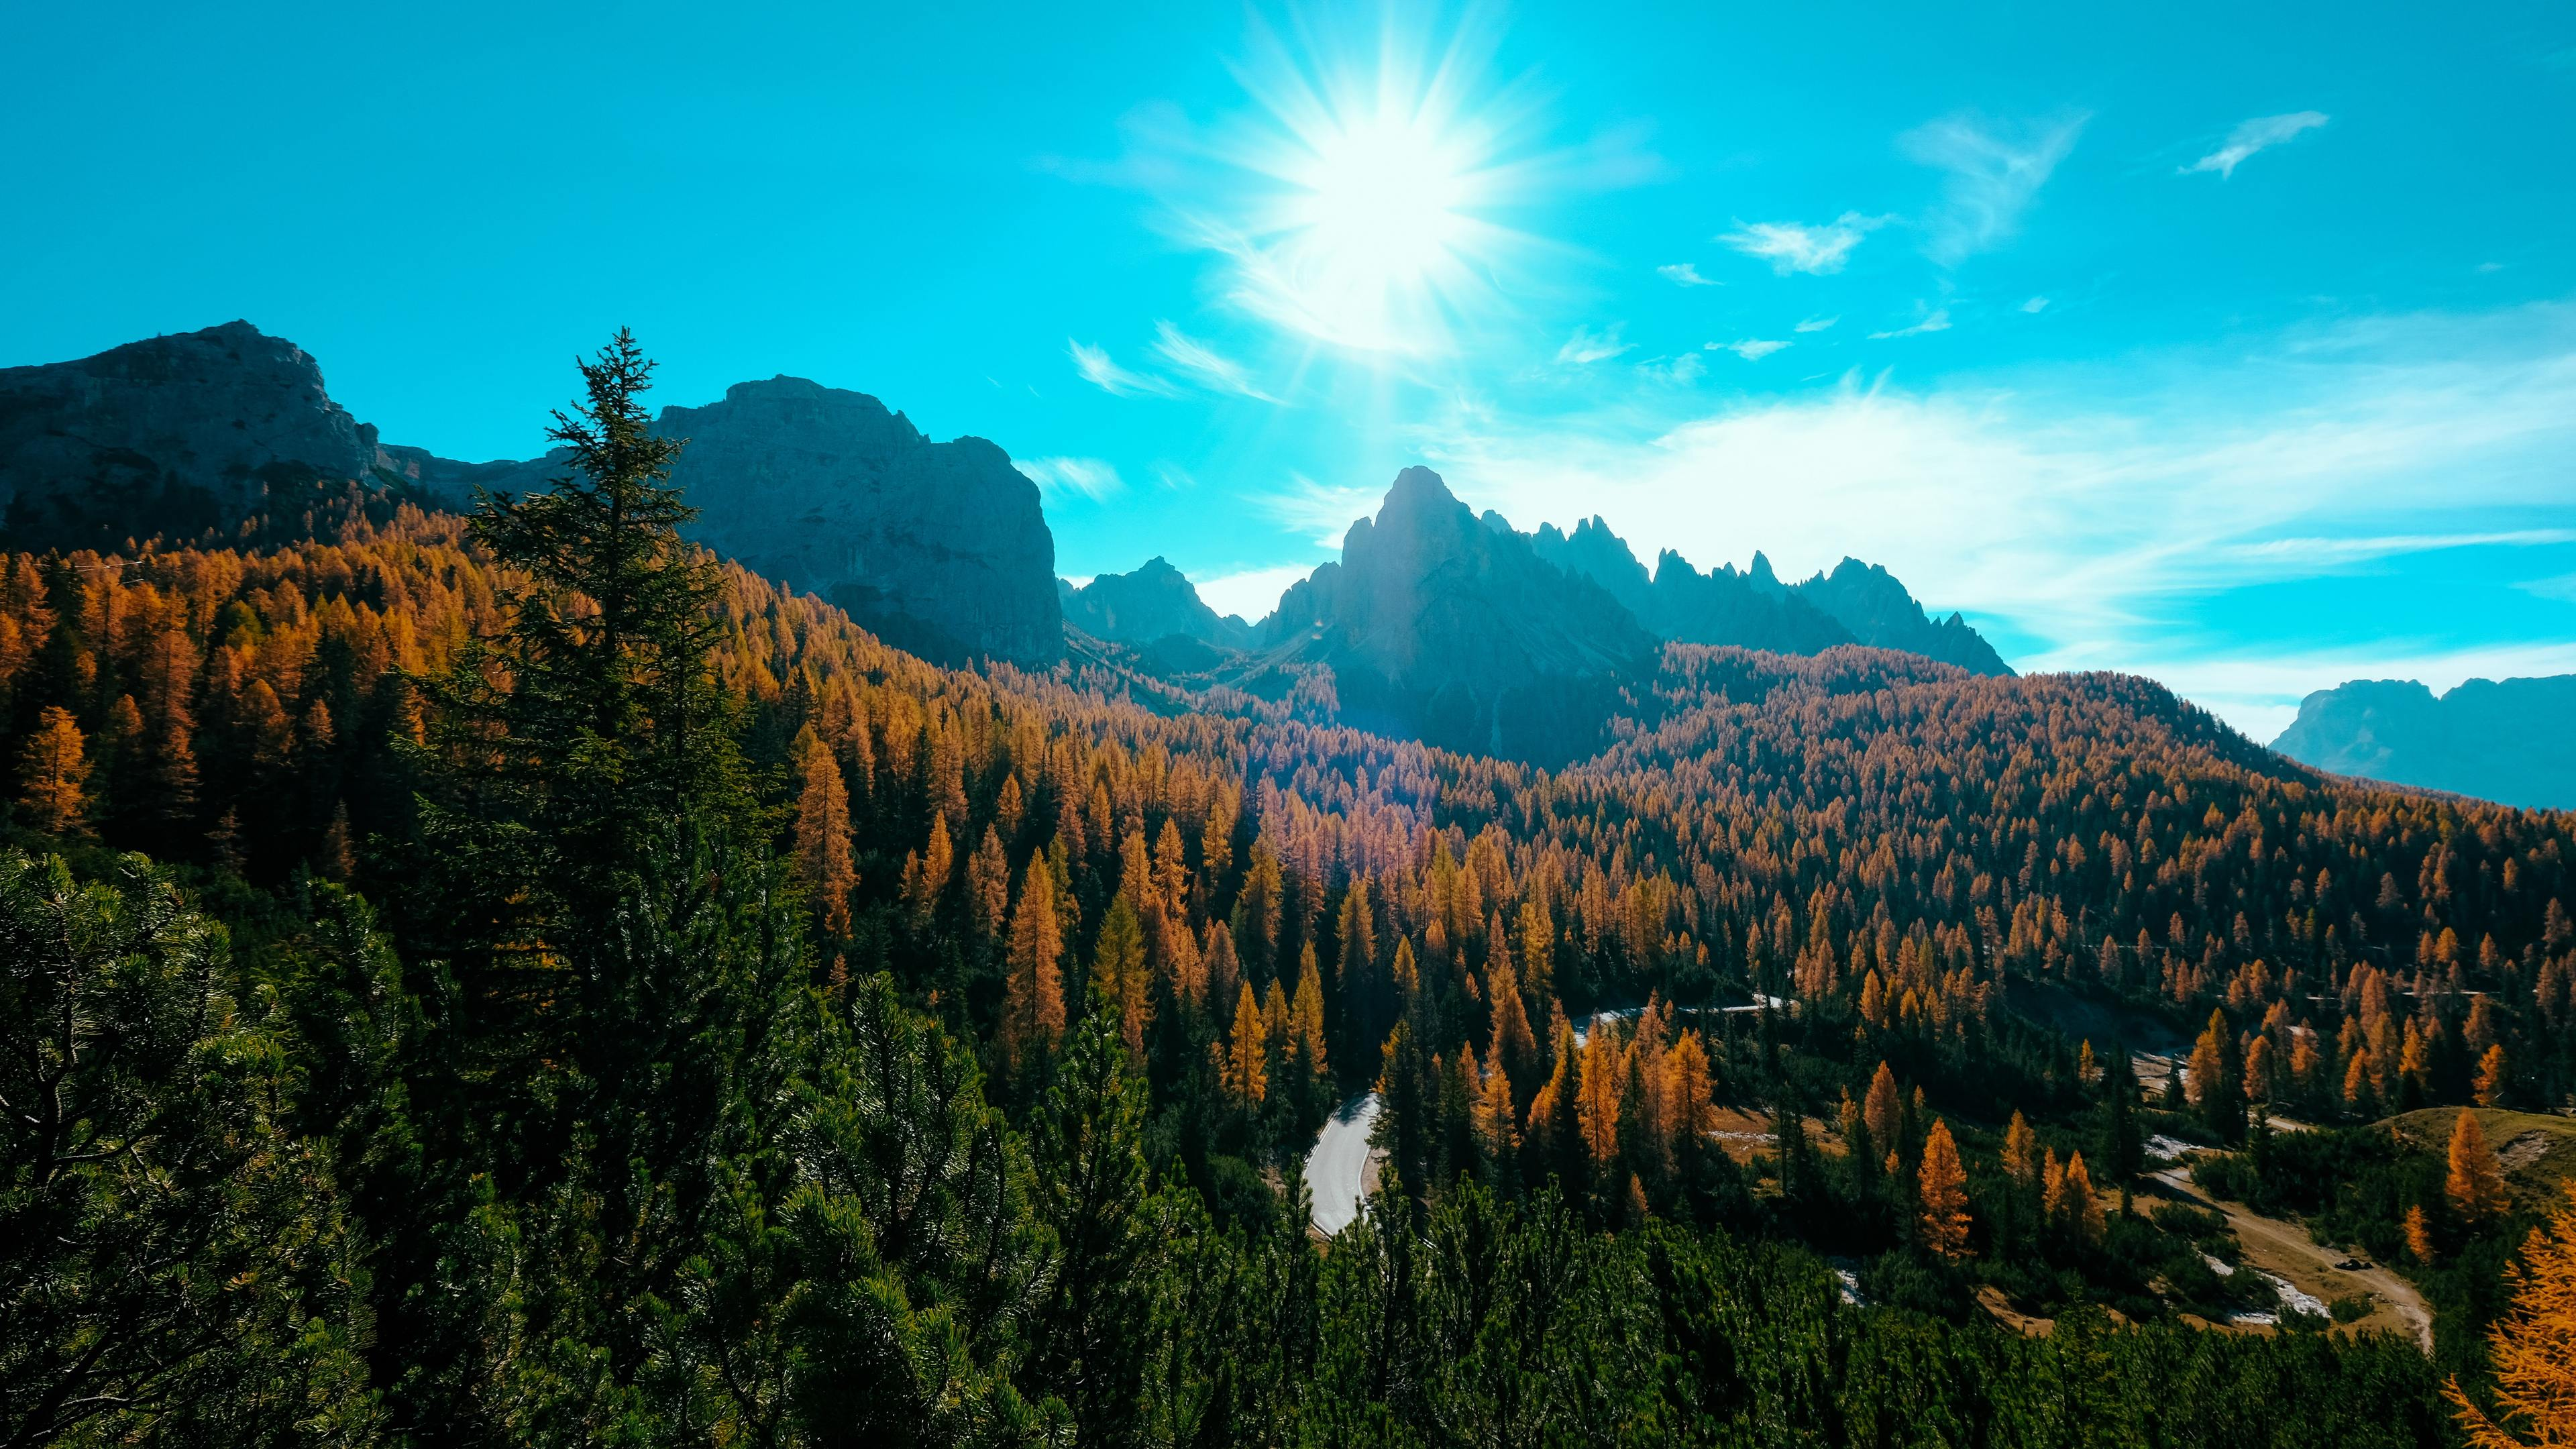 Landscape Trees Nature Forest 4k trees wallpapers, nature ...